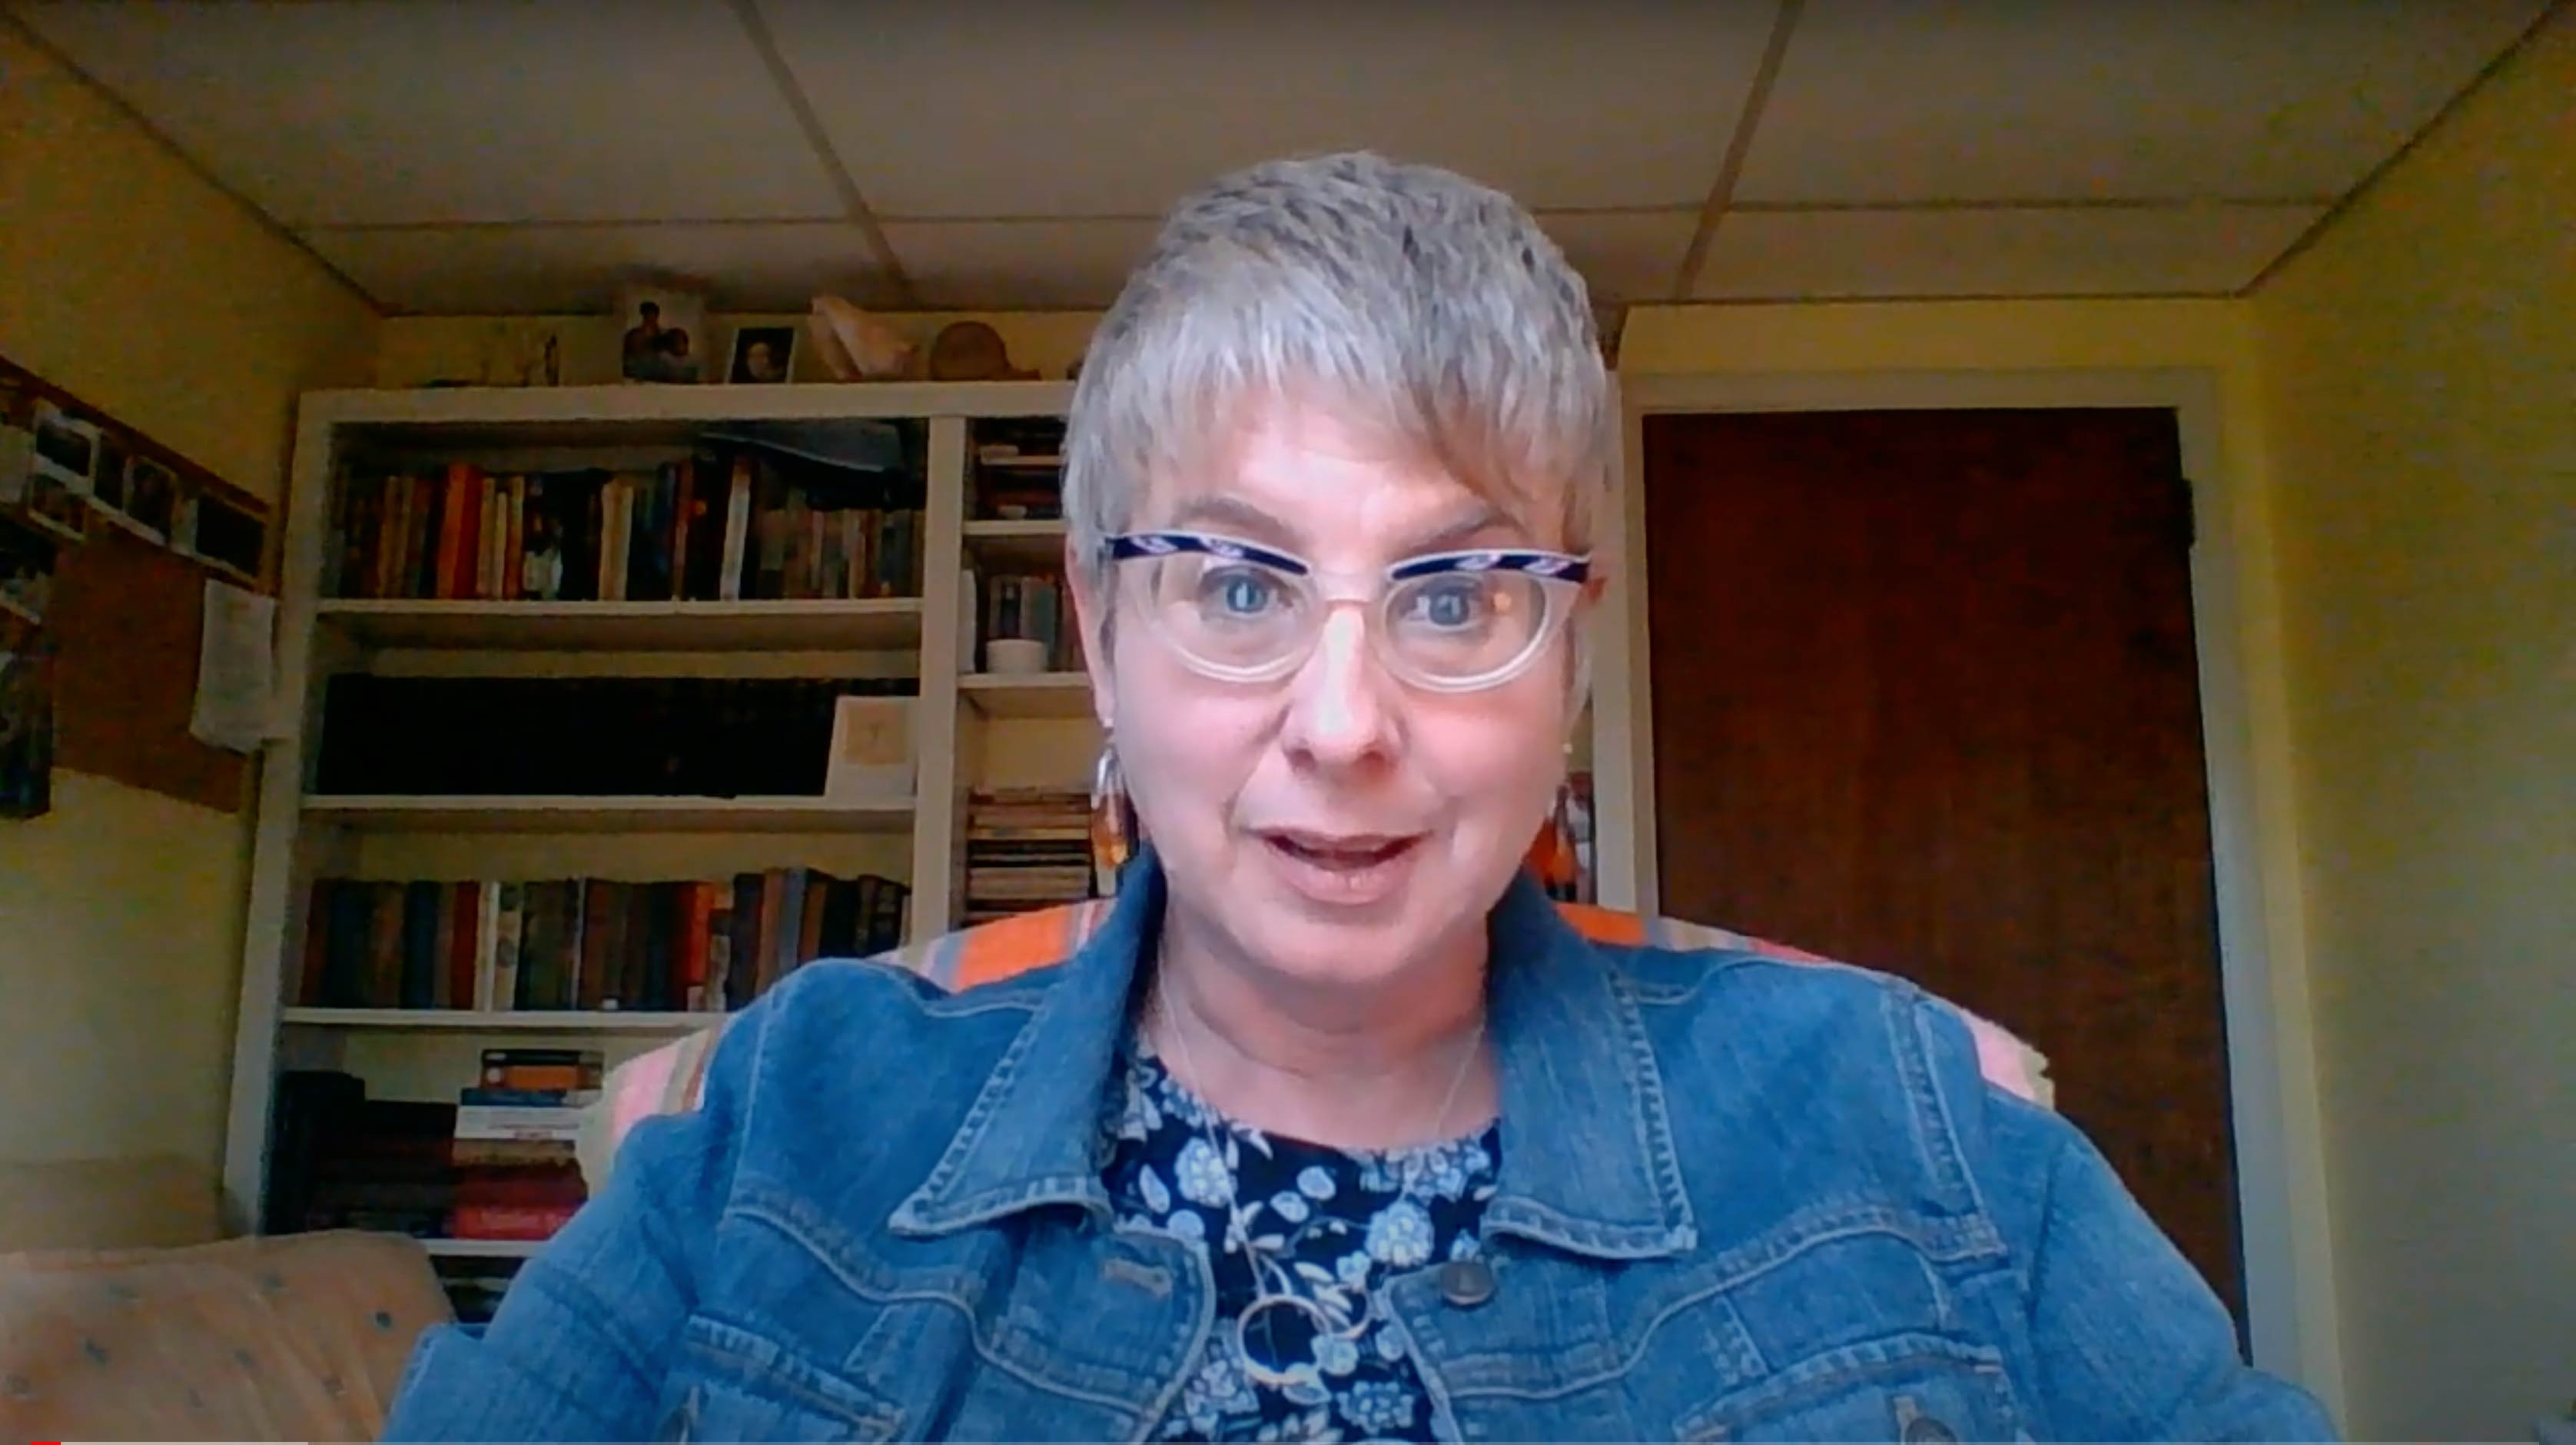 A screenshot of Catherine Carter from this video